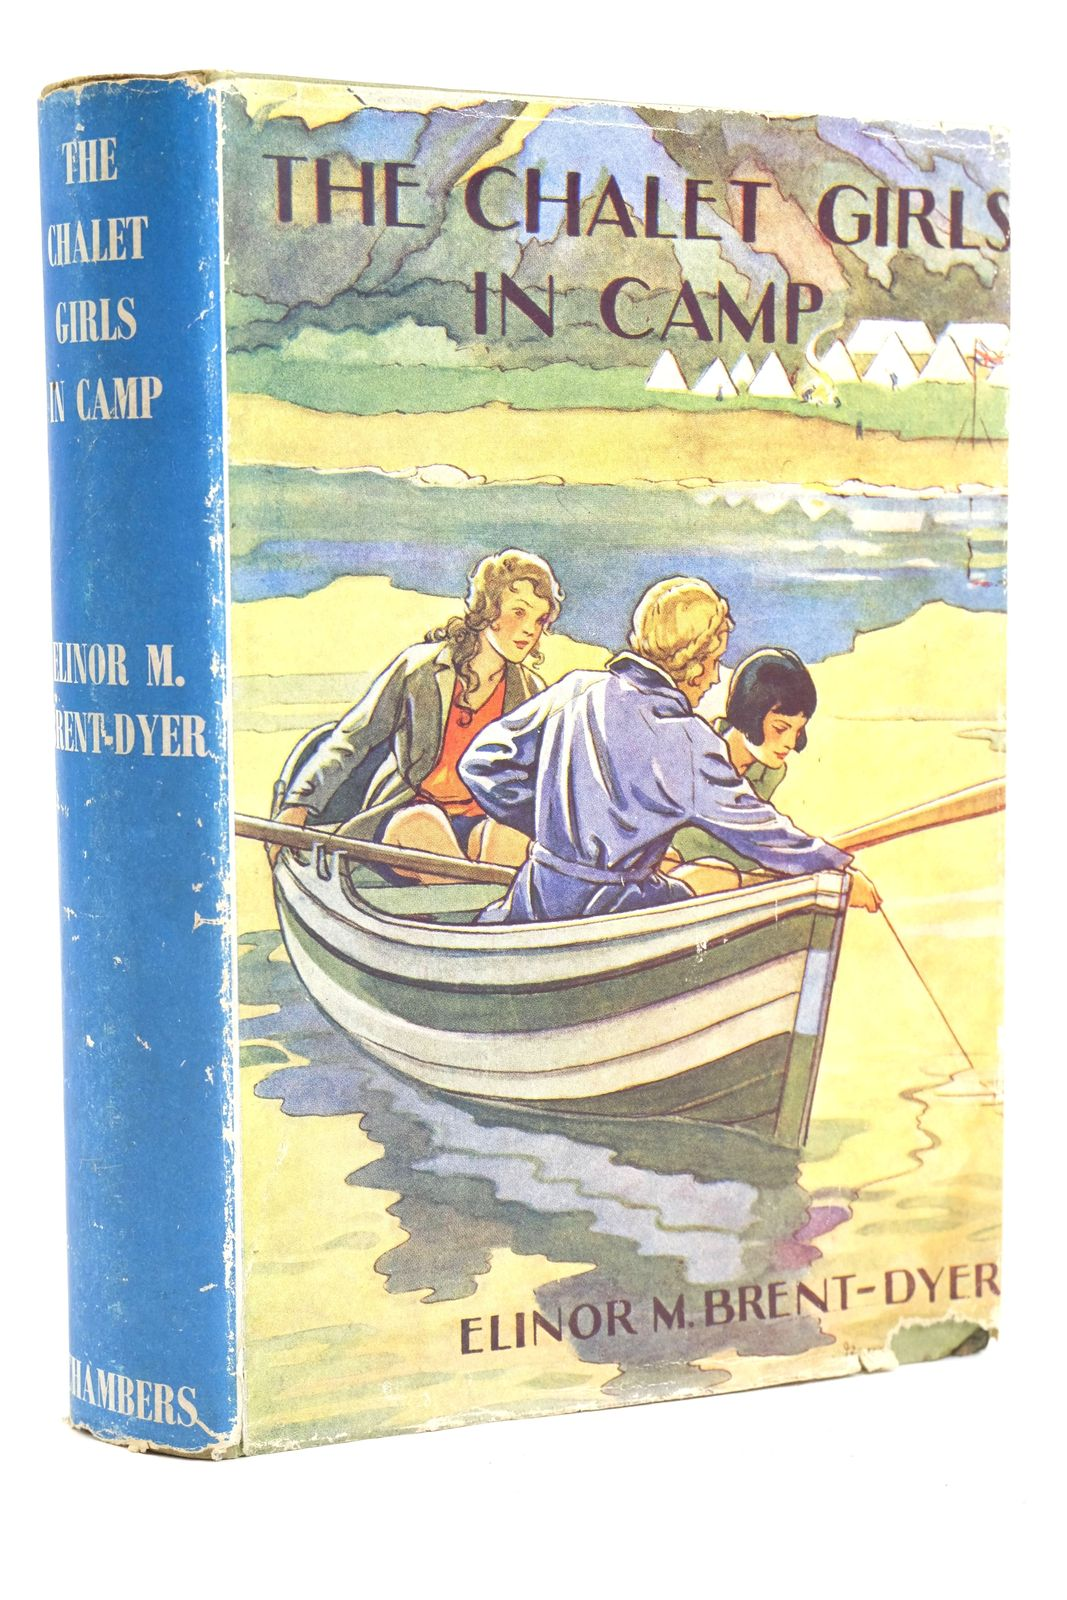 Photo of THE CHALET GIRLS IN CAMP written by Brent-Dyer, Elinor M. published by W. & R. Chambers Limited (STOCK CODE: 1320110)  for sale by Stella & Rose's Books